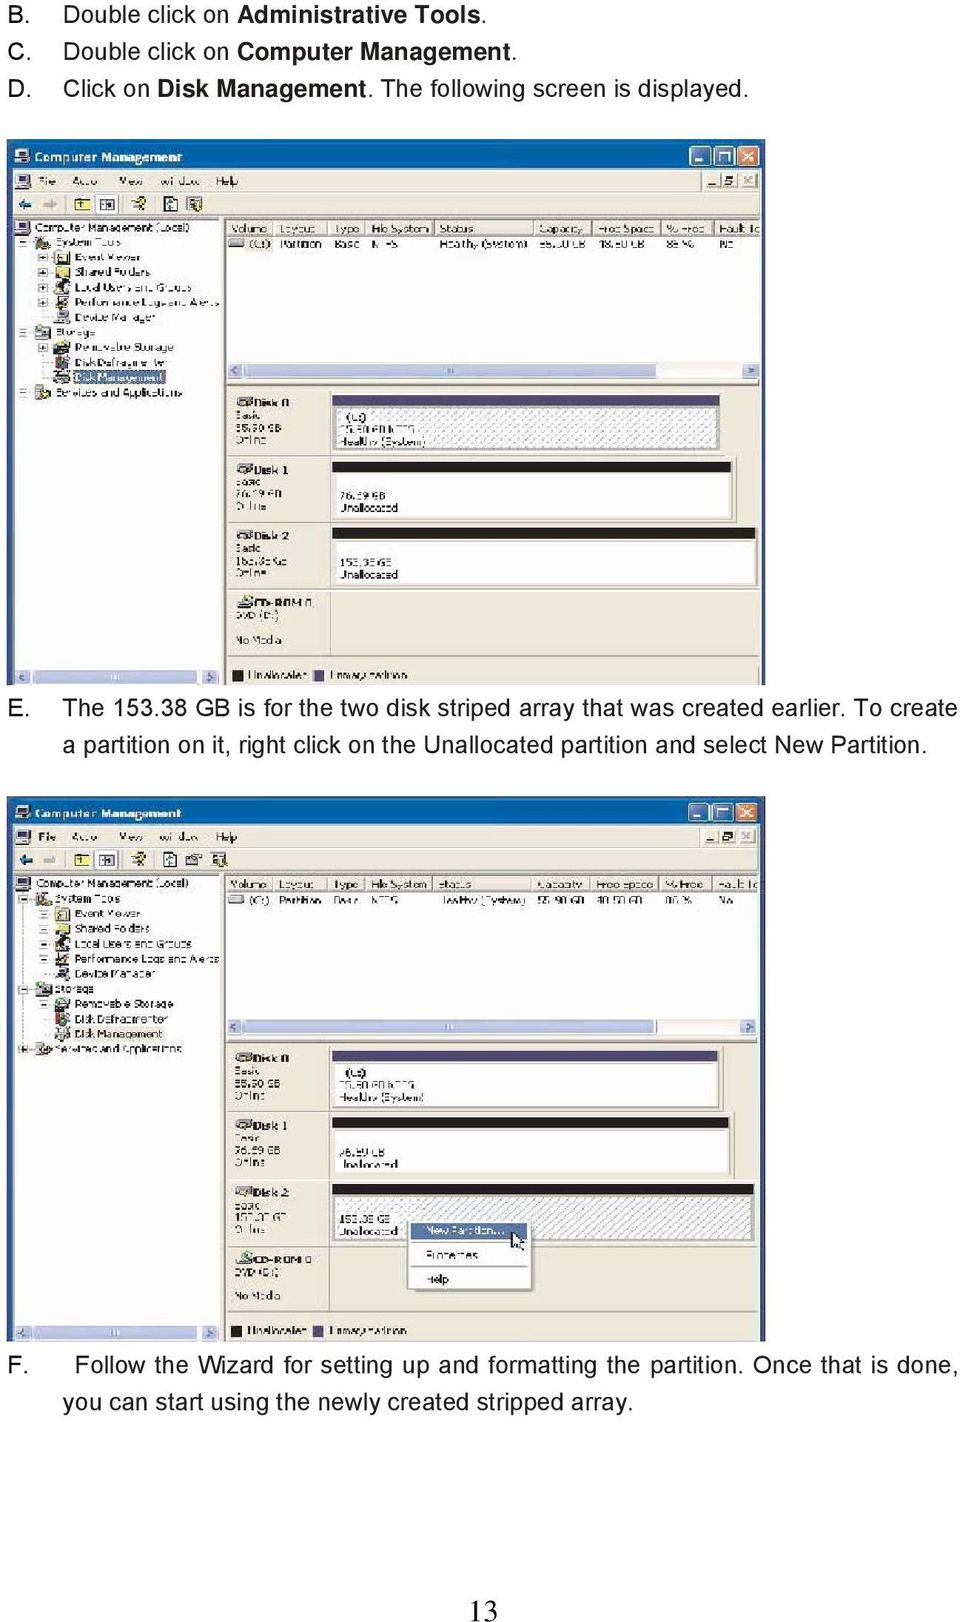 To create a partition on it, right click on the Unallocated partition and select New Partition. F.